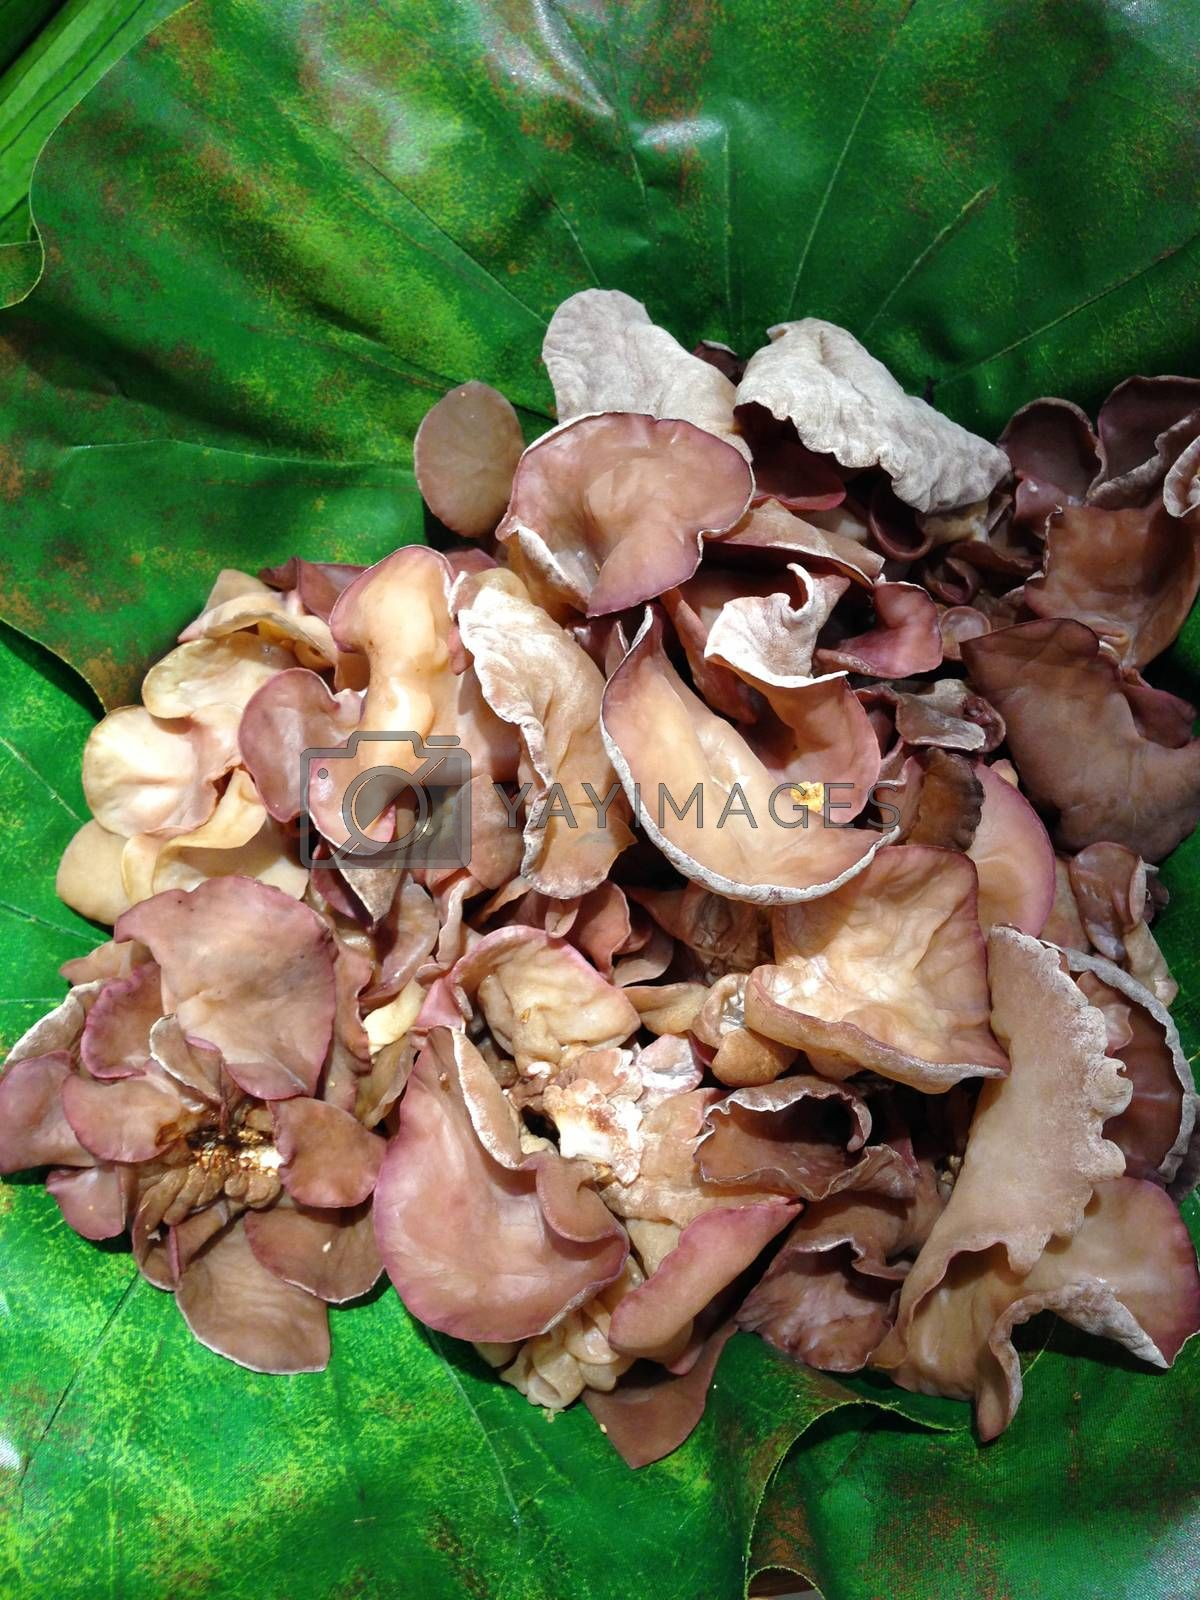 Royalty free image of the raw ear mushroom in a basket by pandara